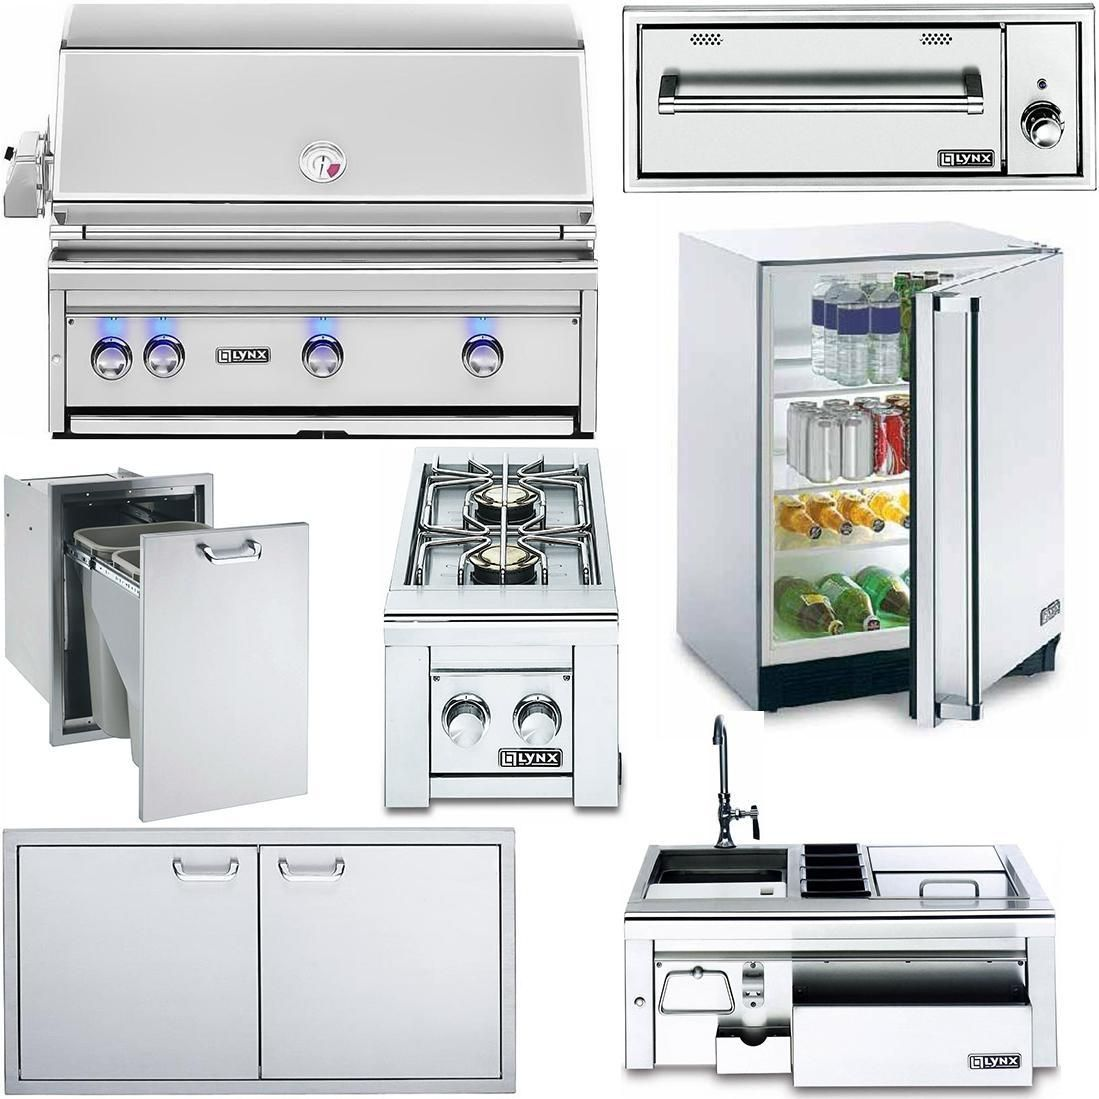 costco kitchen deals suites sears bundles appliance best for whirlpool lowes who app package packages owns bronze sunset